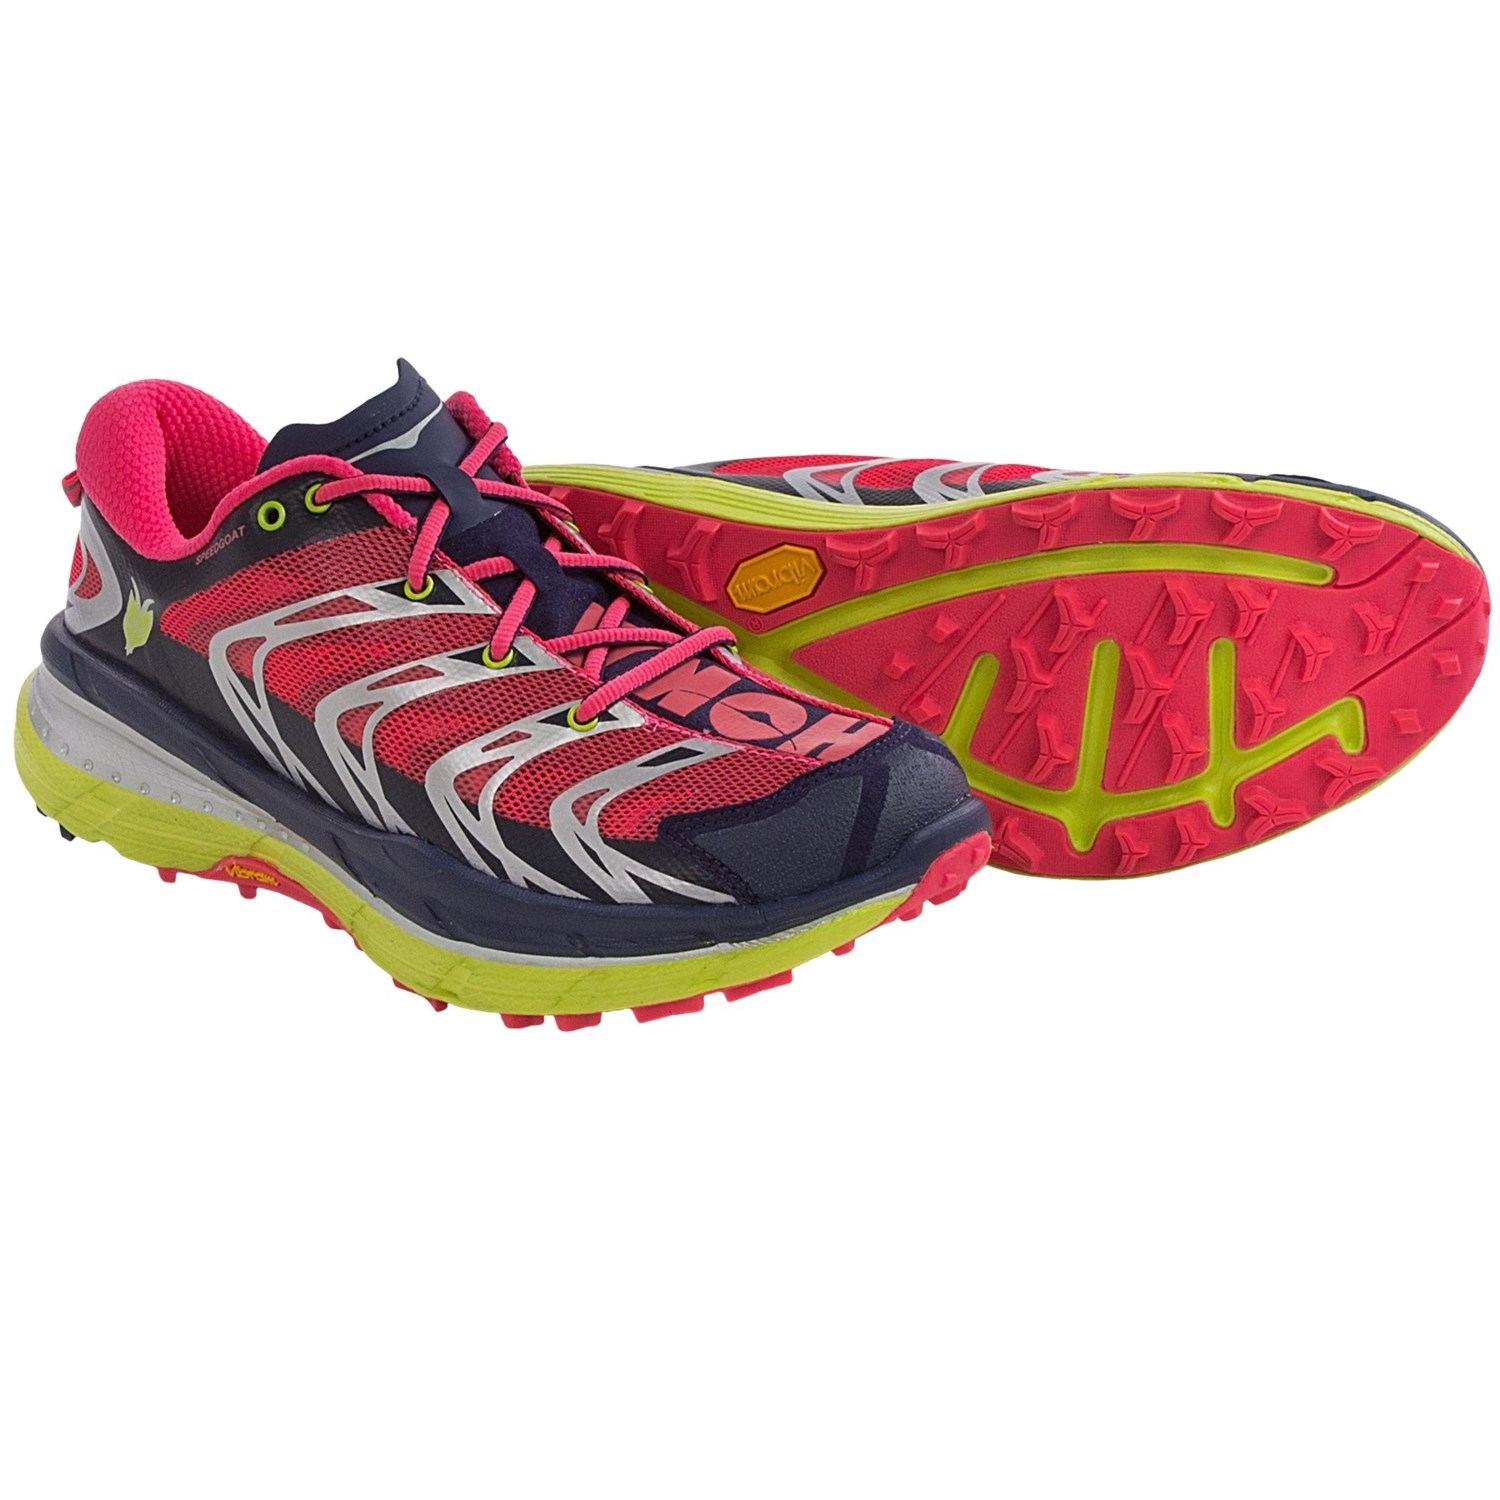 Hoka One One Speedgoat Trail Running Shoes For Women